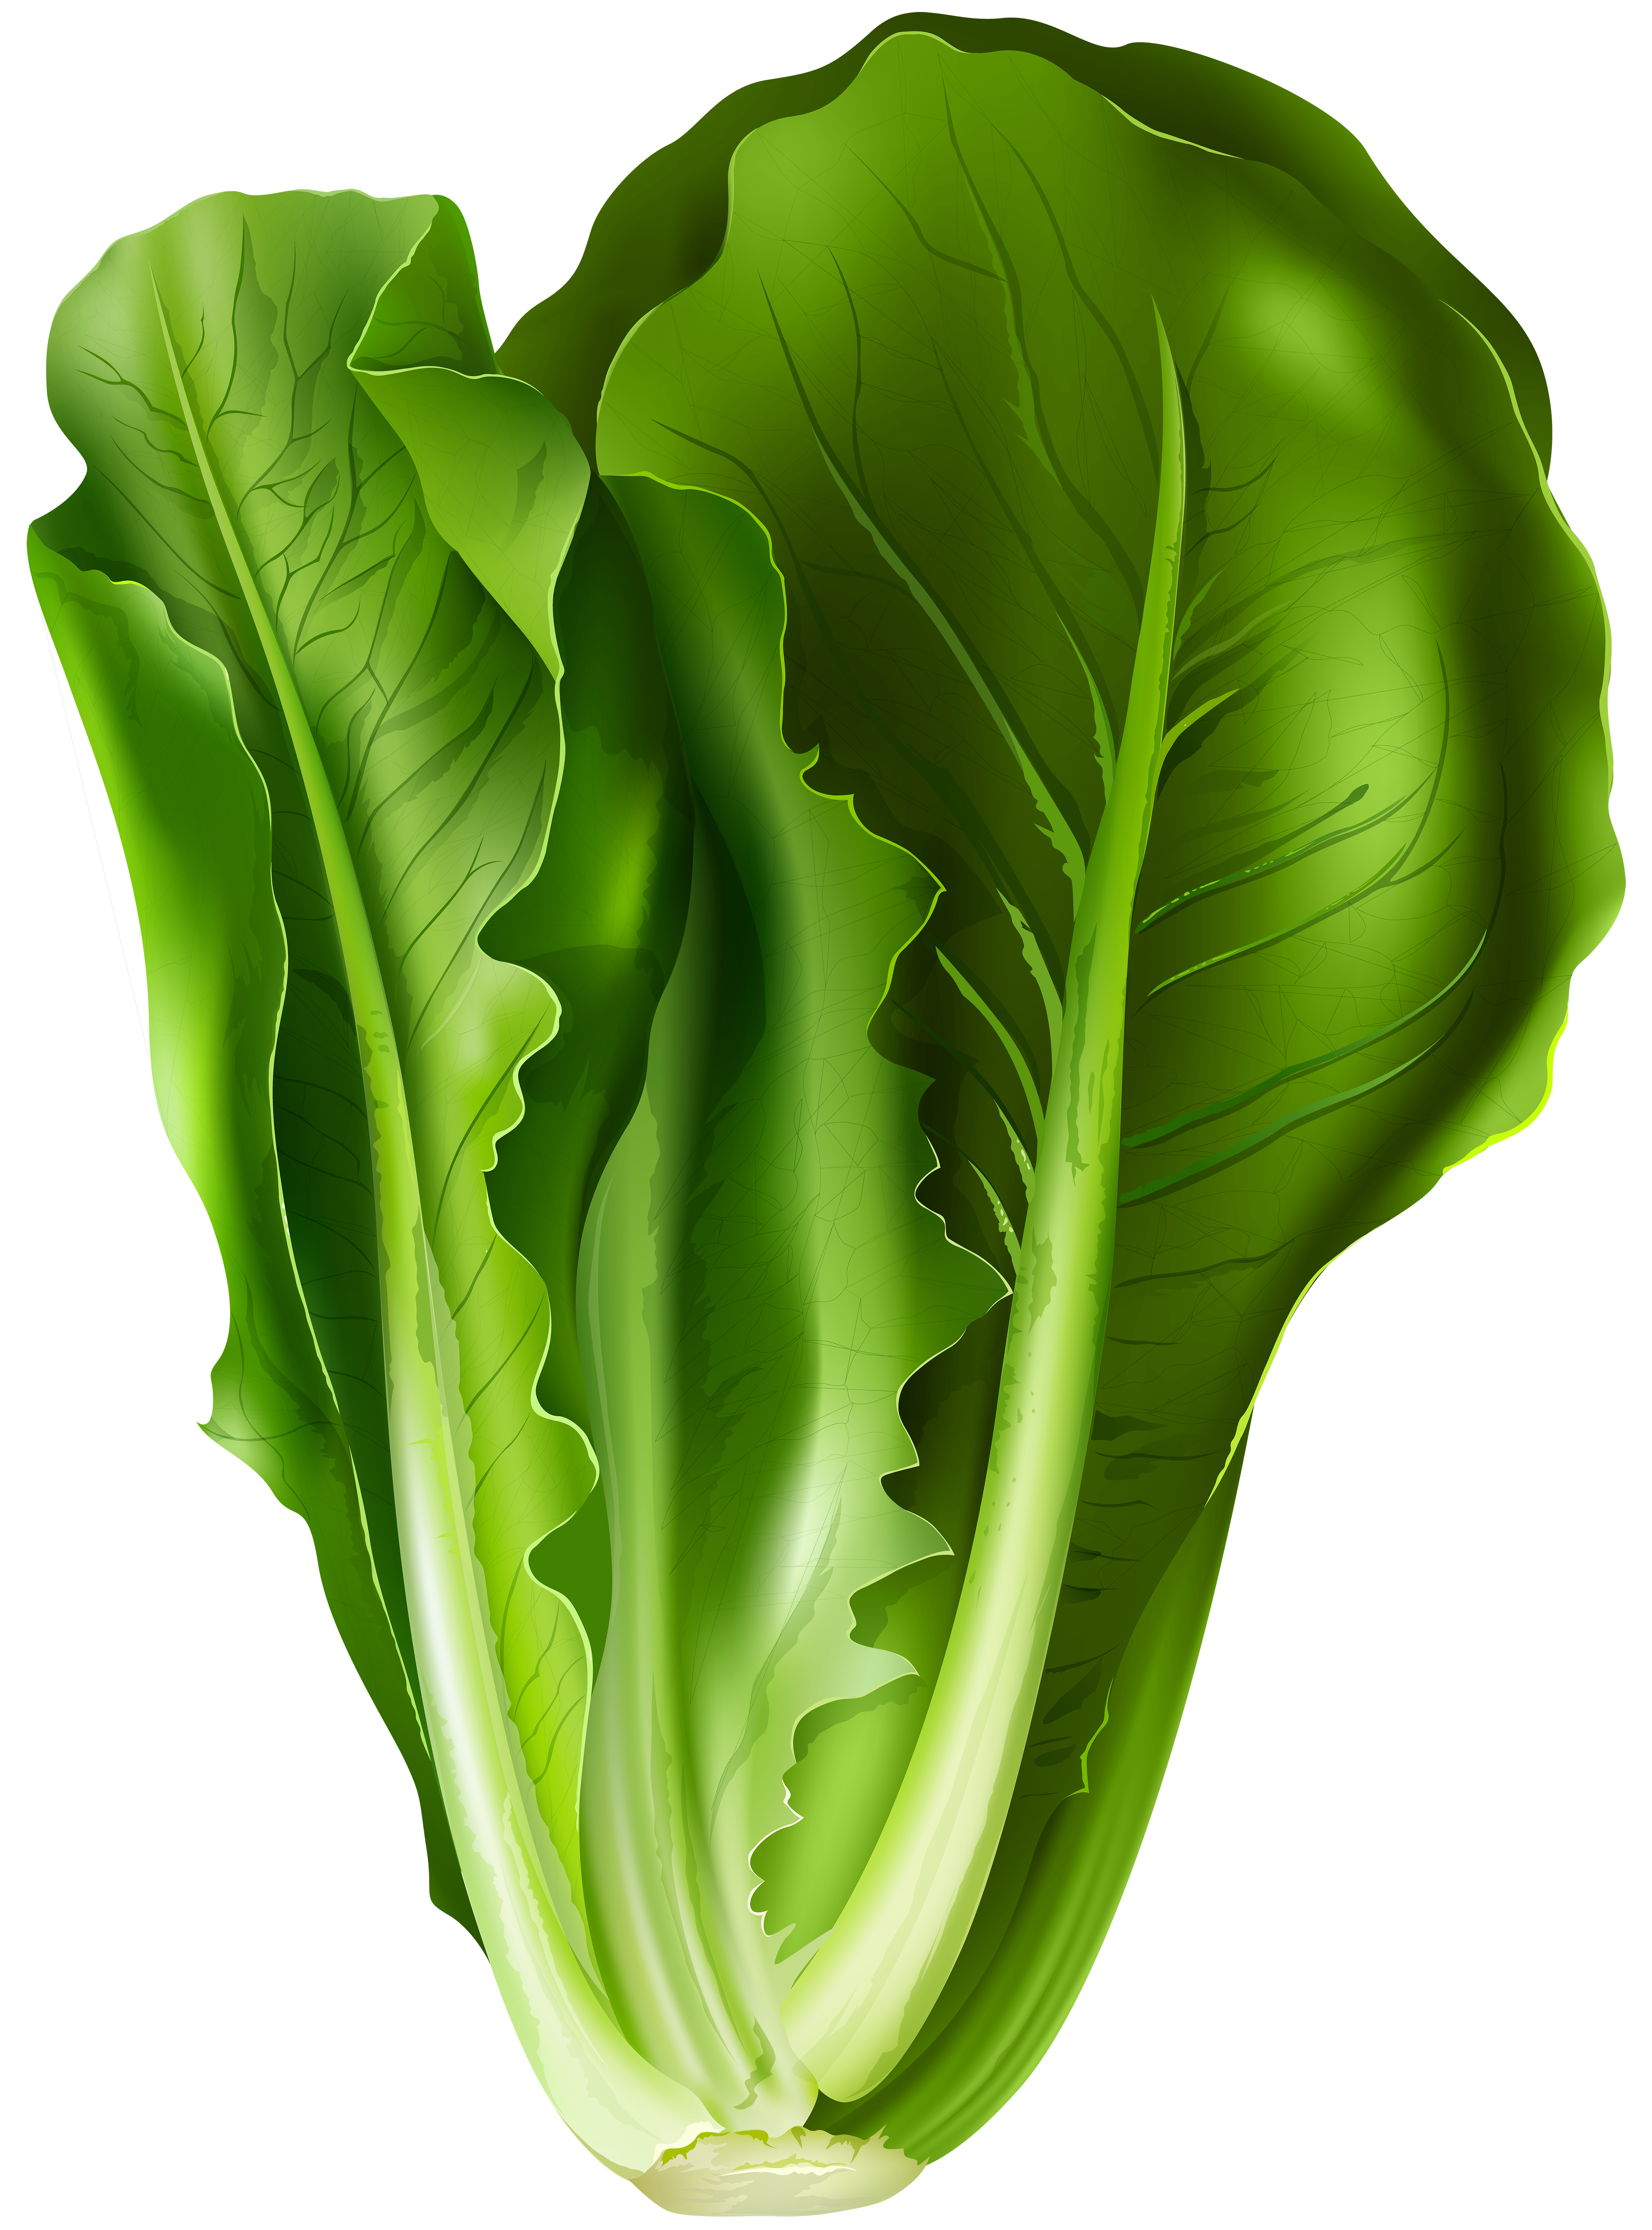 Lettuce cartoon png. Clip art image gallery